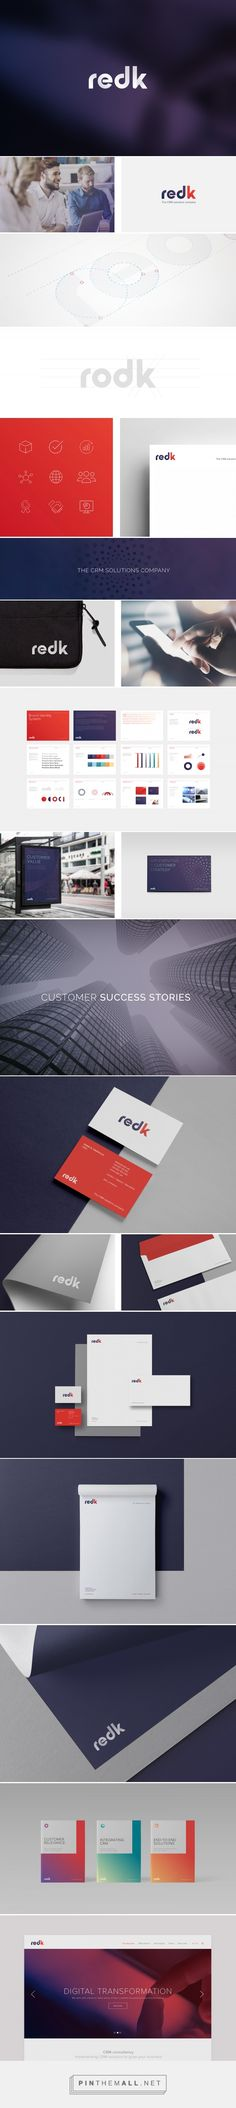 redk on Behance - created via https://pinthemall.net